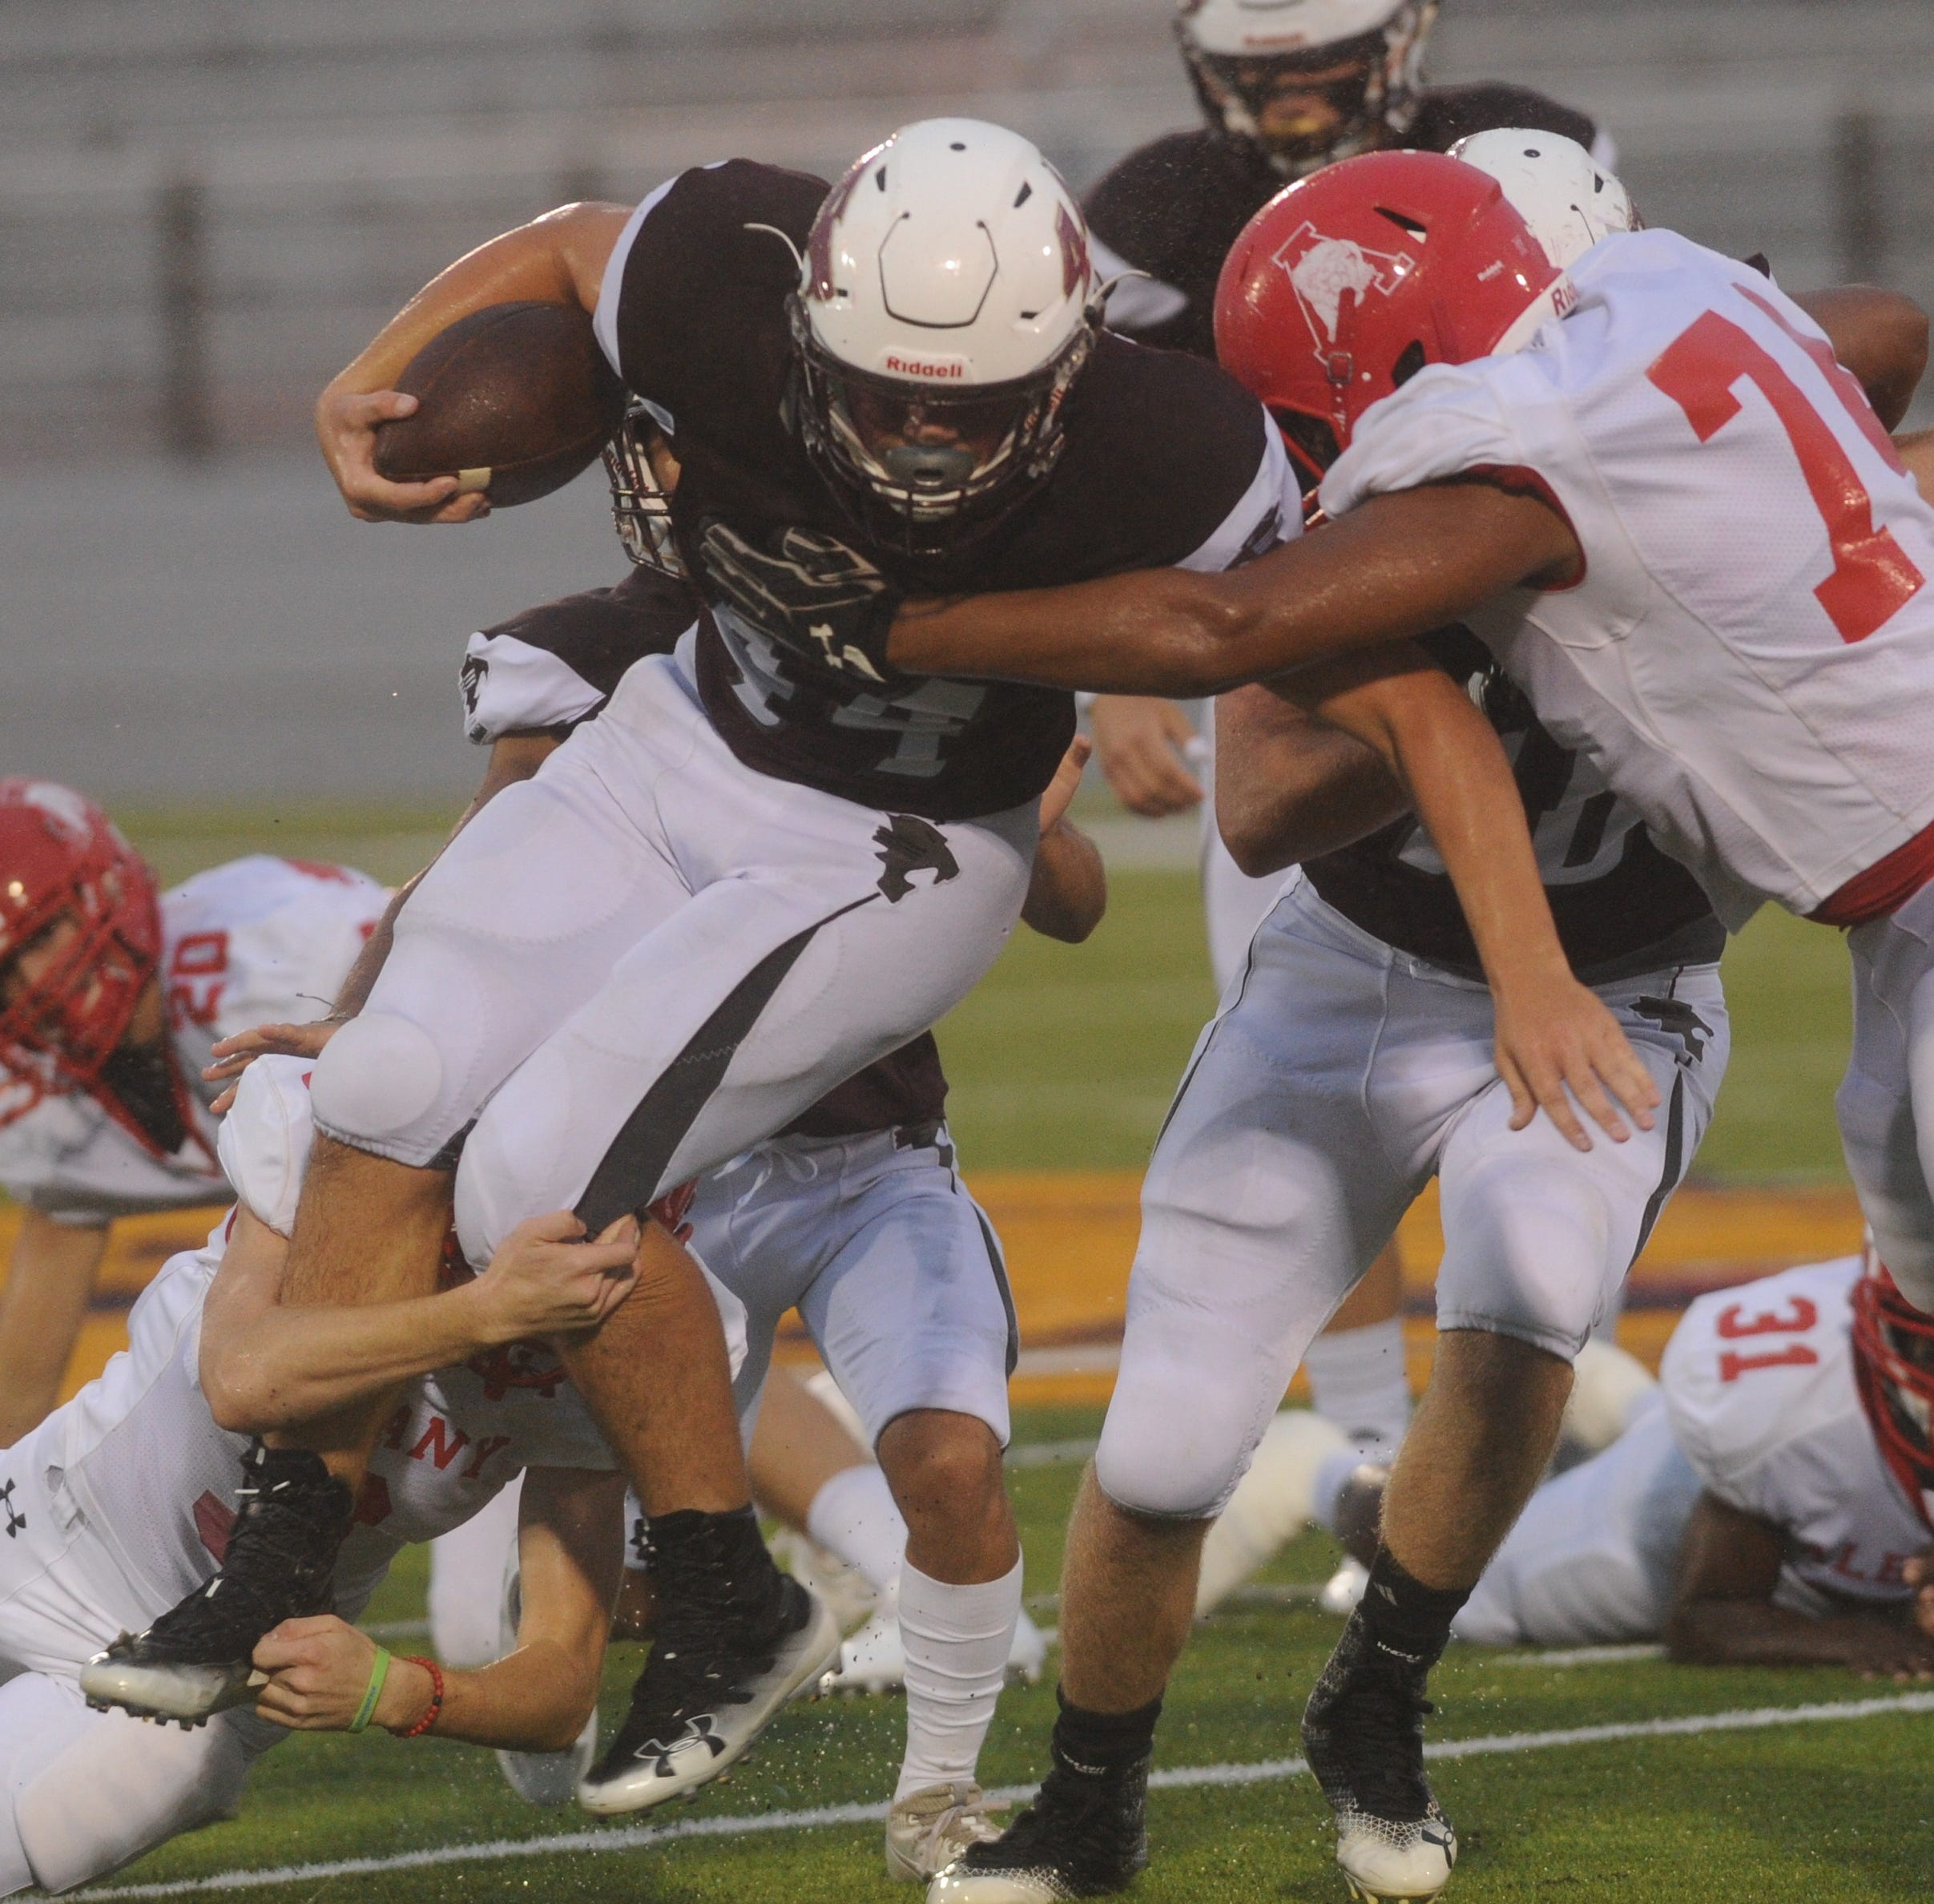 Hawley rushing attack too much for injury-plagued Albany on rainy Friday night